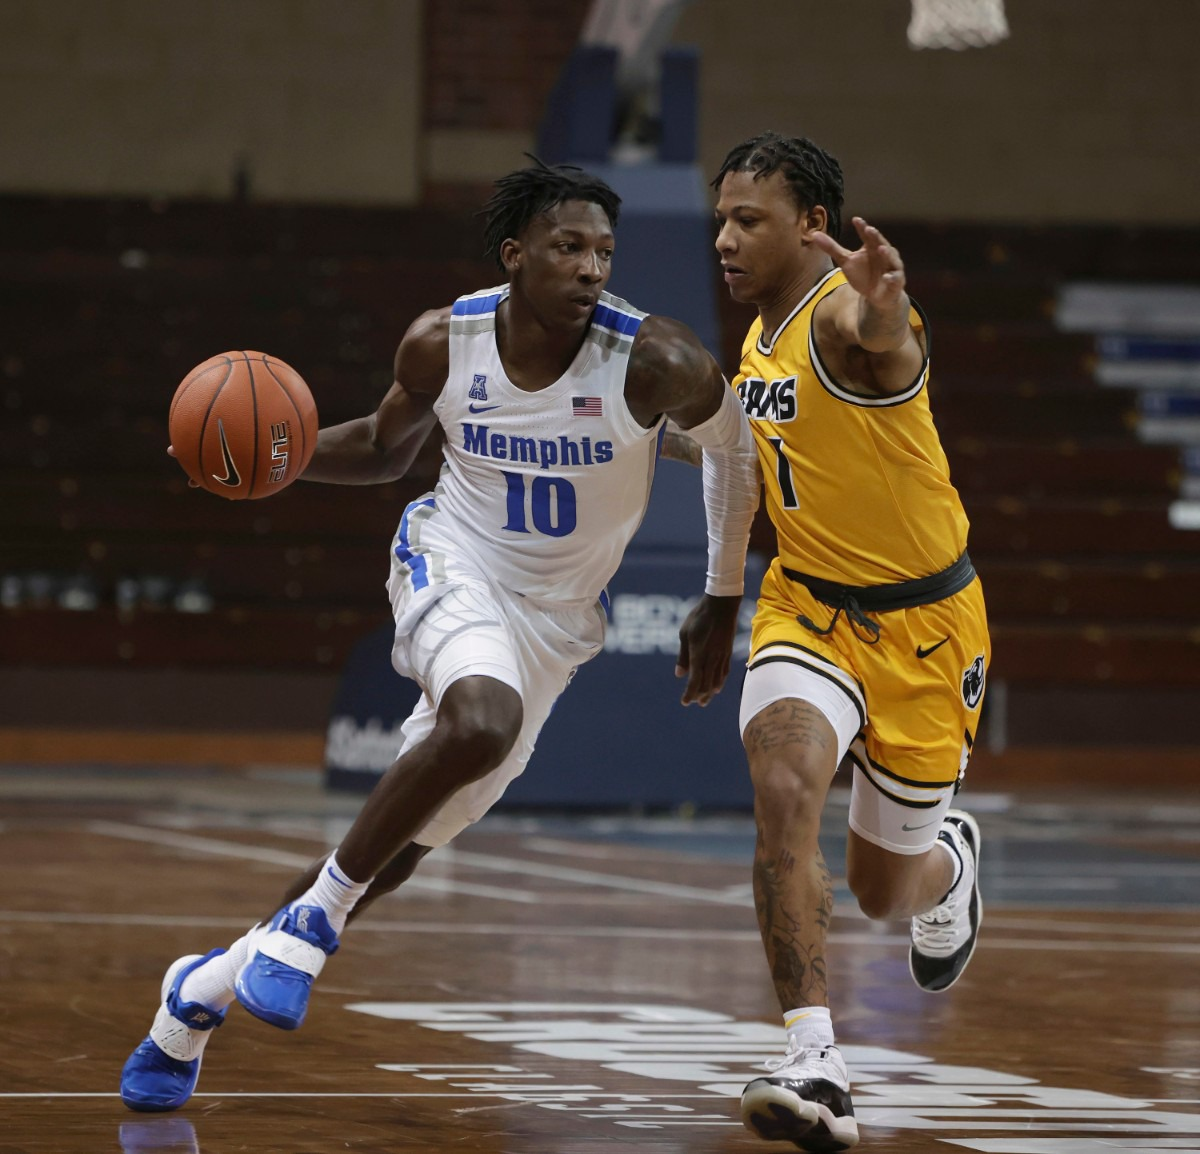 <strong>The University of Memphis&rsquo; Damion Baugh drives at Adrian Baldwin Jr. of the Virginia Commonwealth Rams during the Bad Boy Mowers Crossover Classic at the Sanford Pentagon in Sioux Falls, S.D.</strong> (Richard Carlson/Inertia)